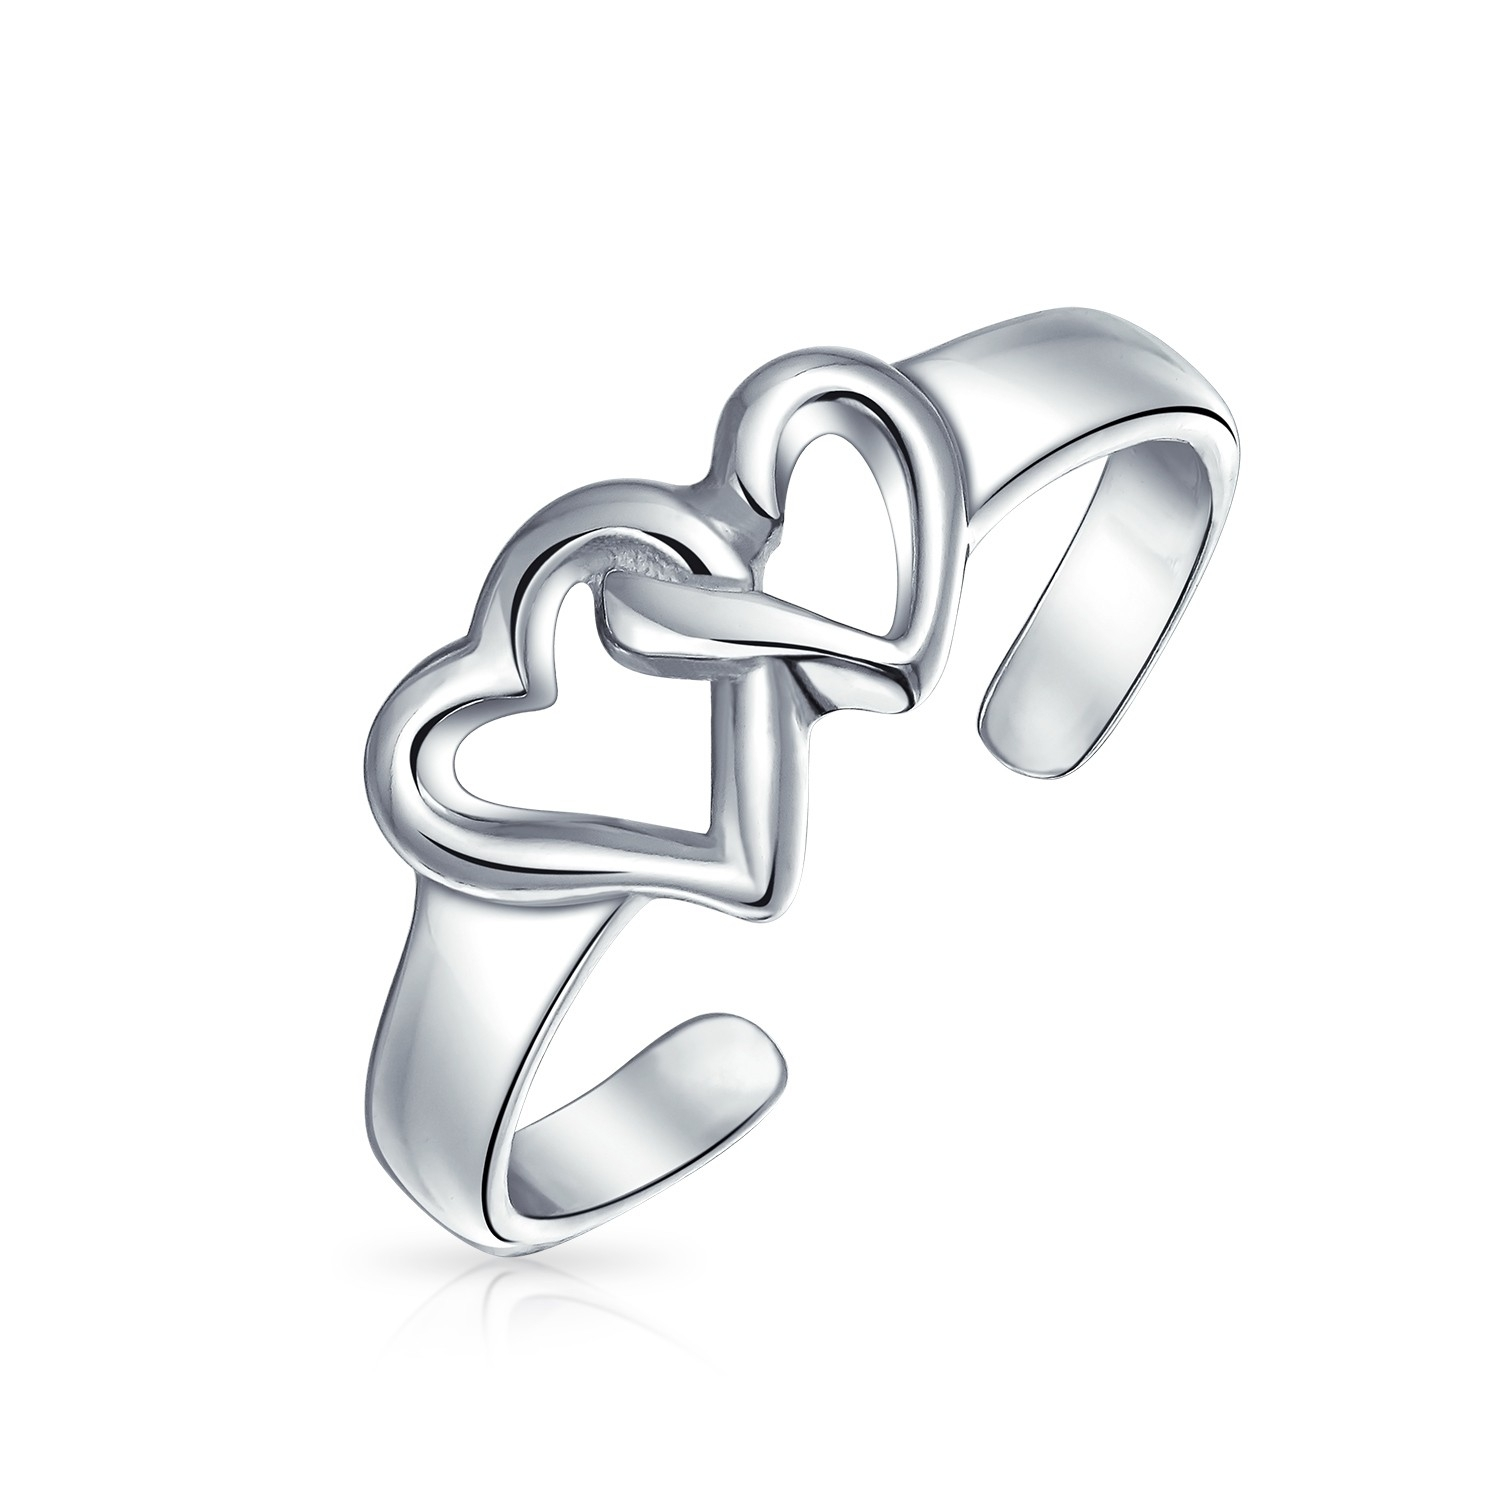 Adjustable Double Open Heart Midi Ring Sterling Silver Toe Rings Intended For Most Up To Date Platinum Toe Rings (View 13 of 15)